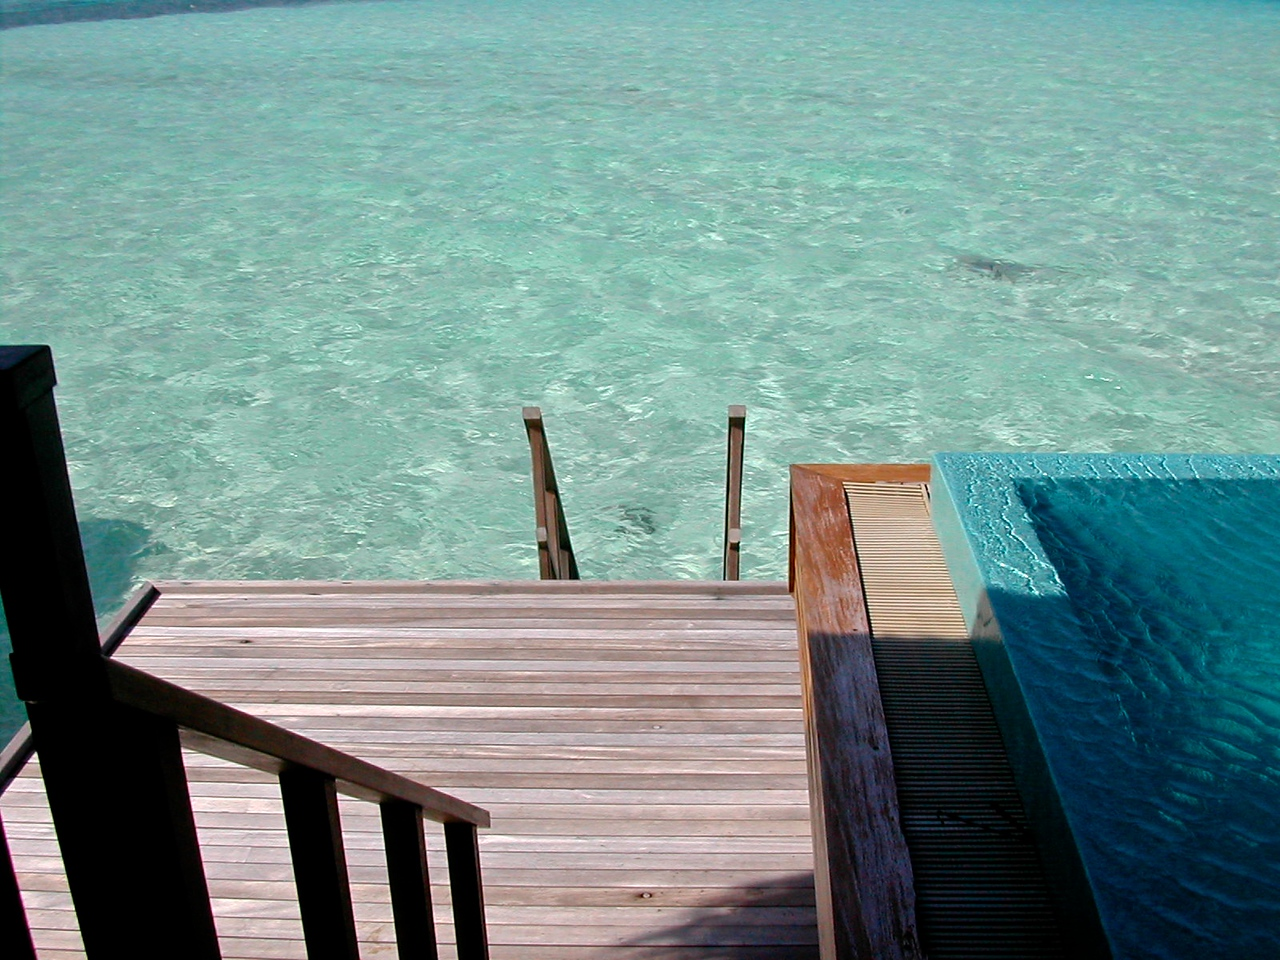 The deck allows you to take stairs directly into the lagoon and ocean.